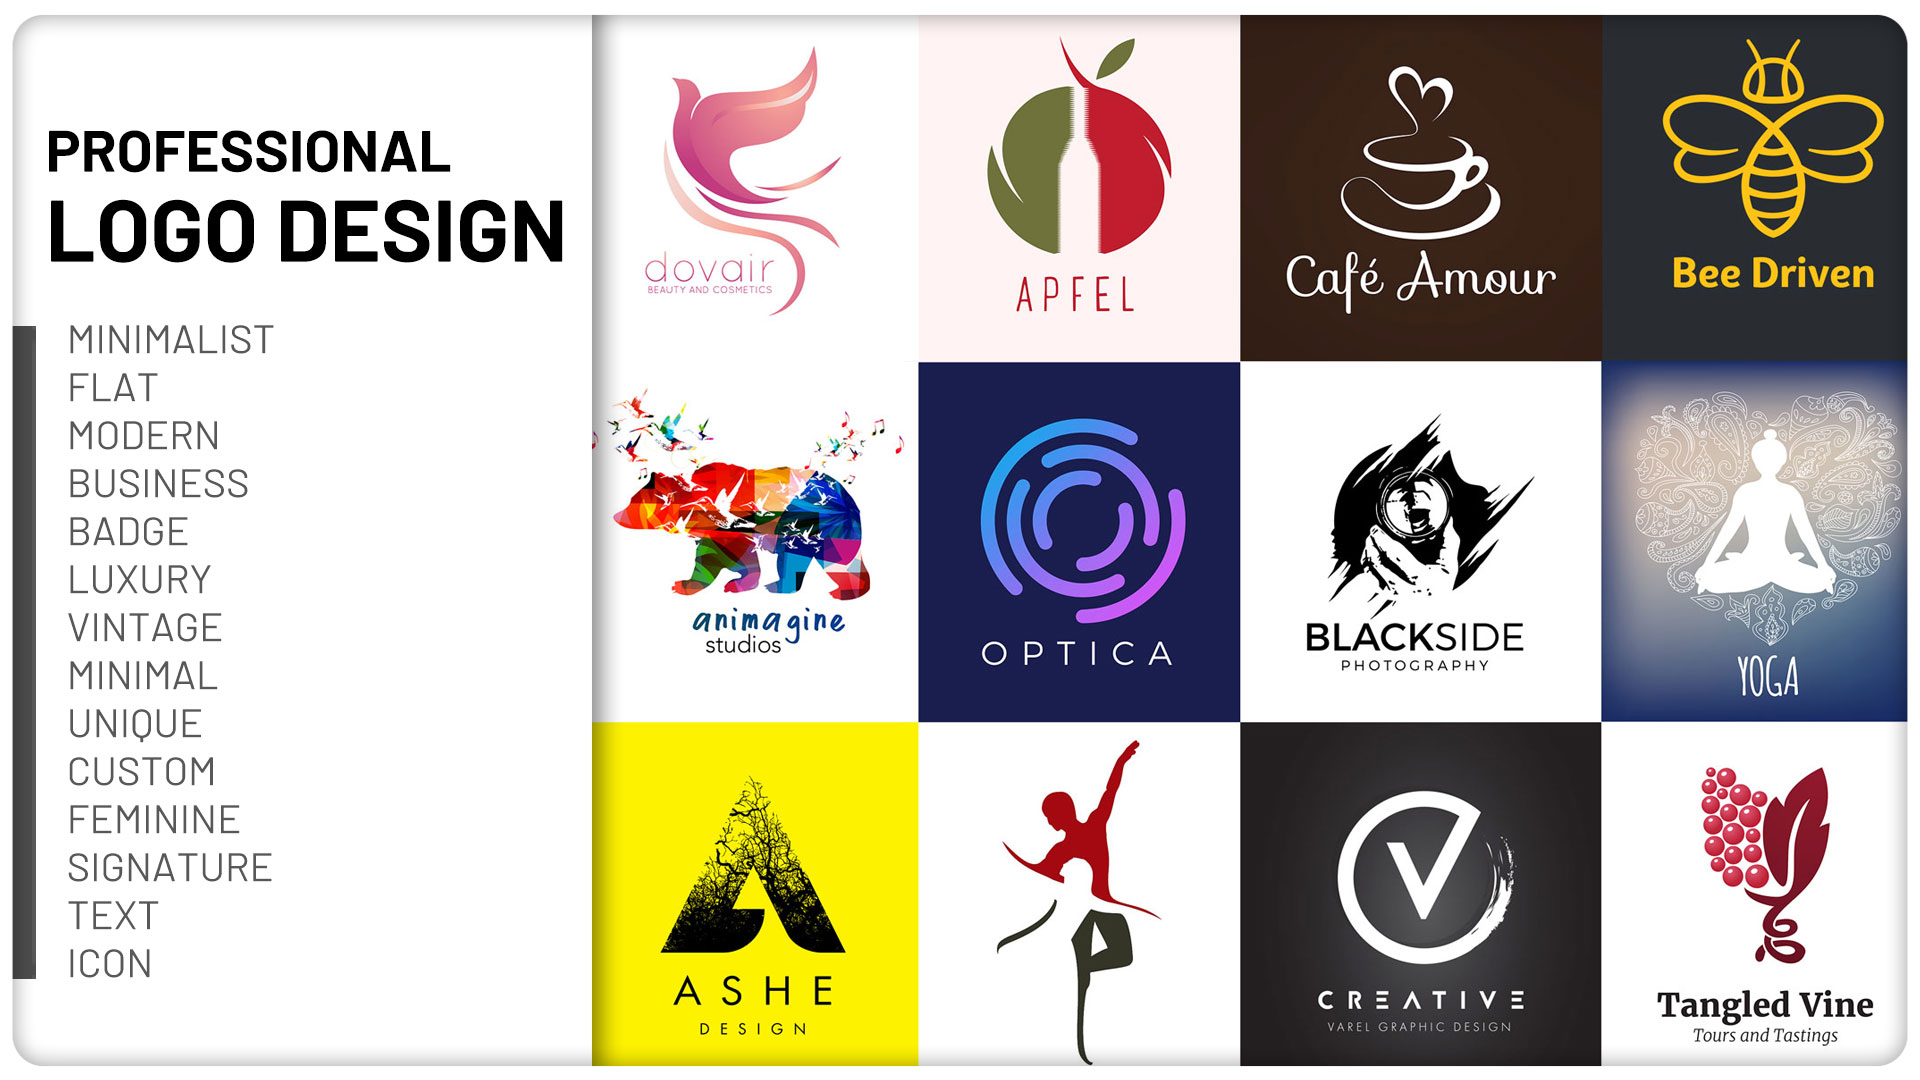 will design 2 creative and professional logo for you in 24 hours